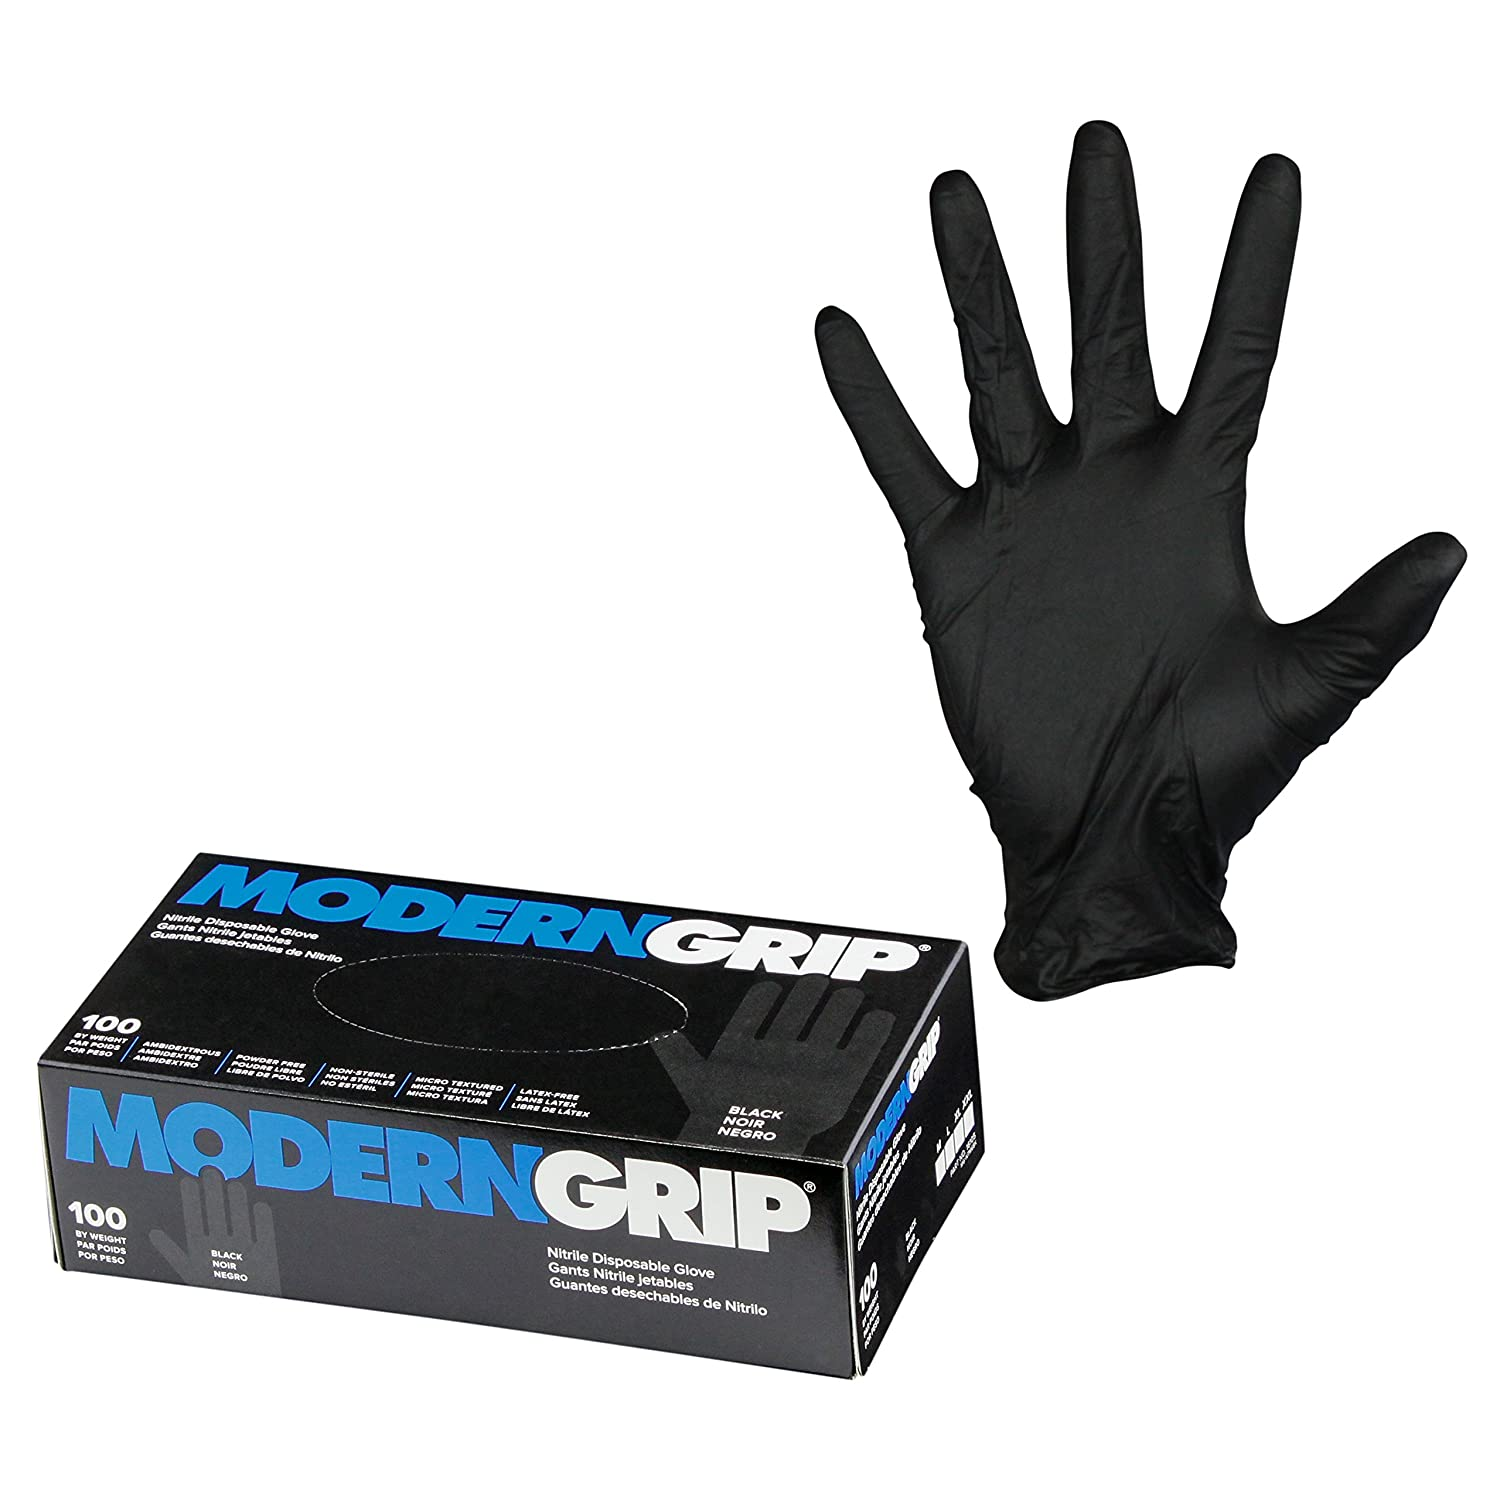 Modern Classic Grip 16105-M Nitrile 6 Disposable G mil Sale Premium Thickness